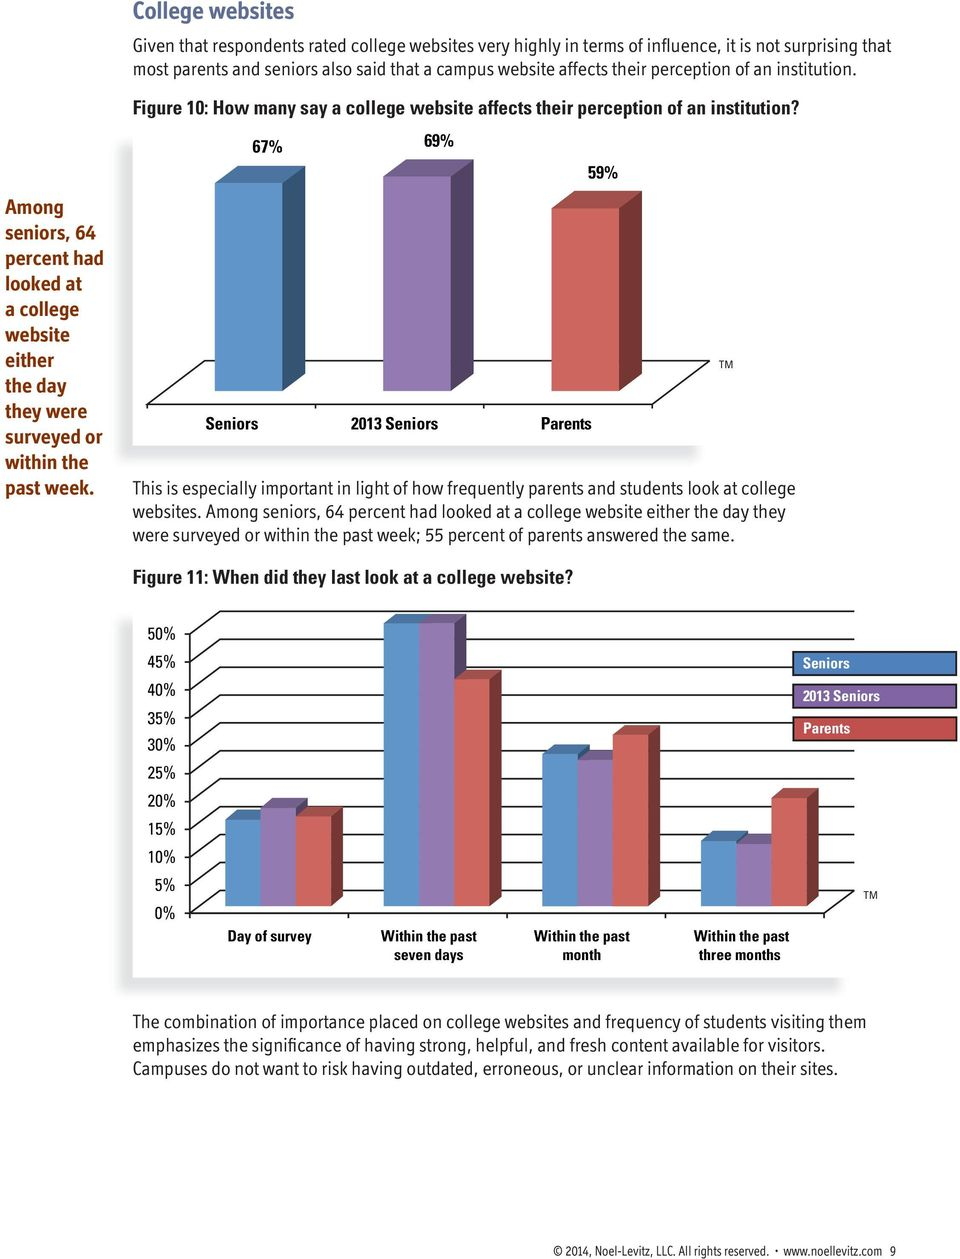 Figure 10: How many say a college website affects their perception of an institution?